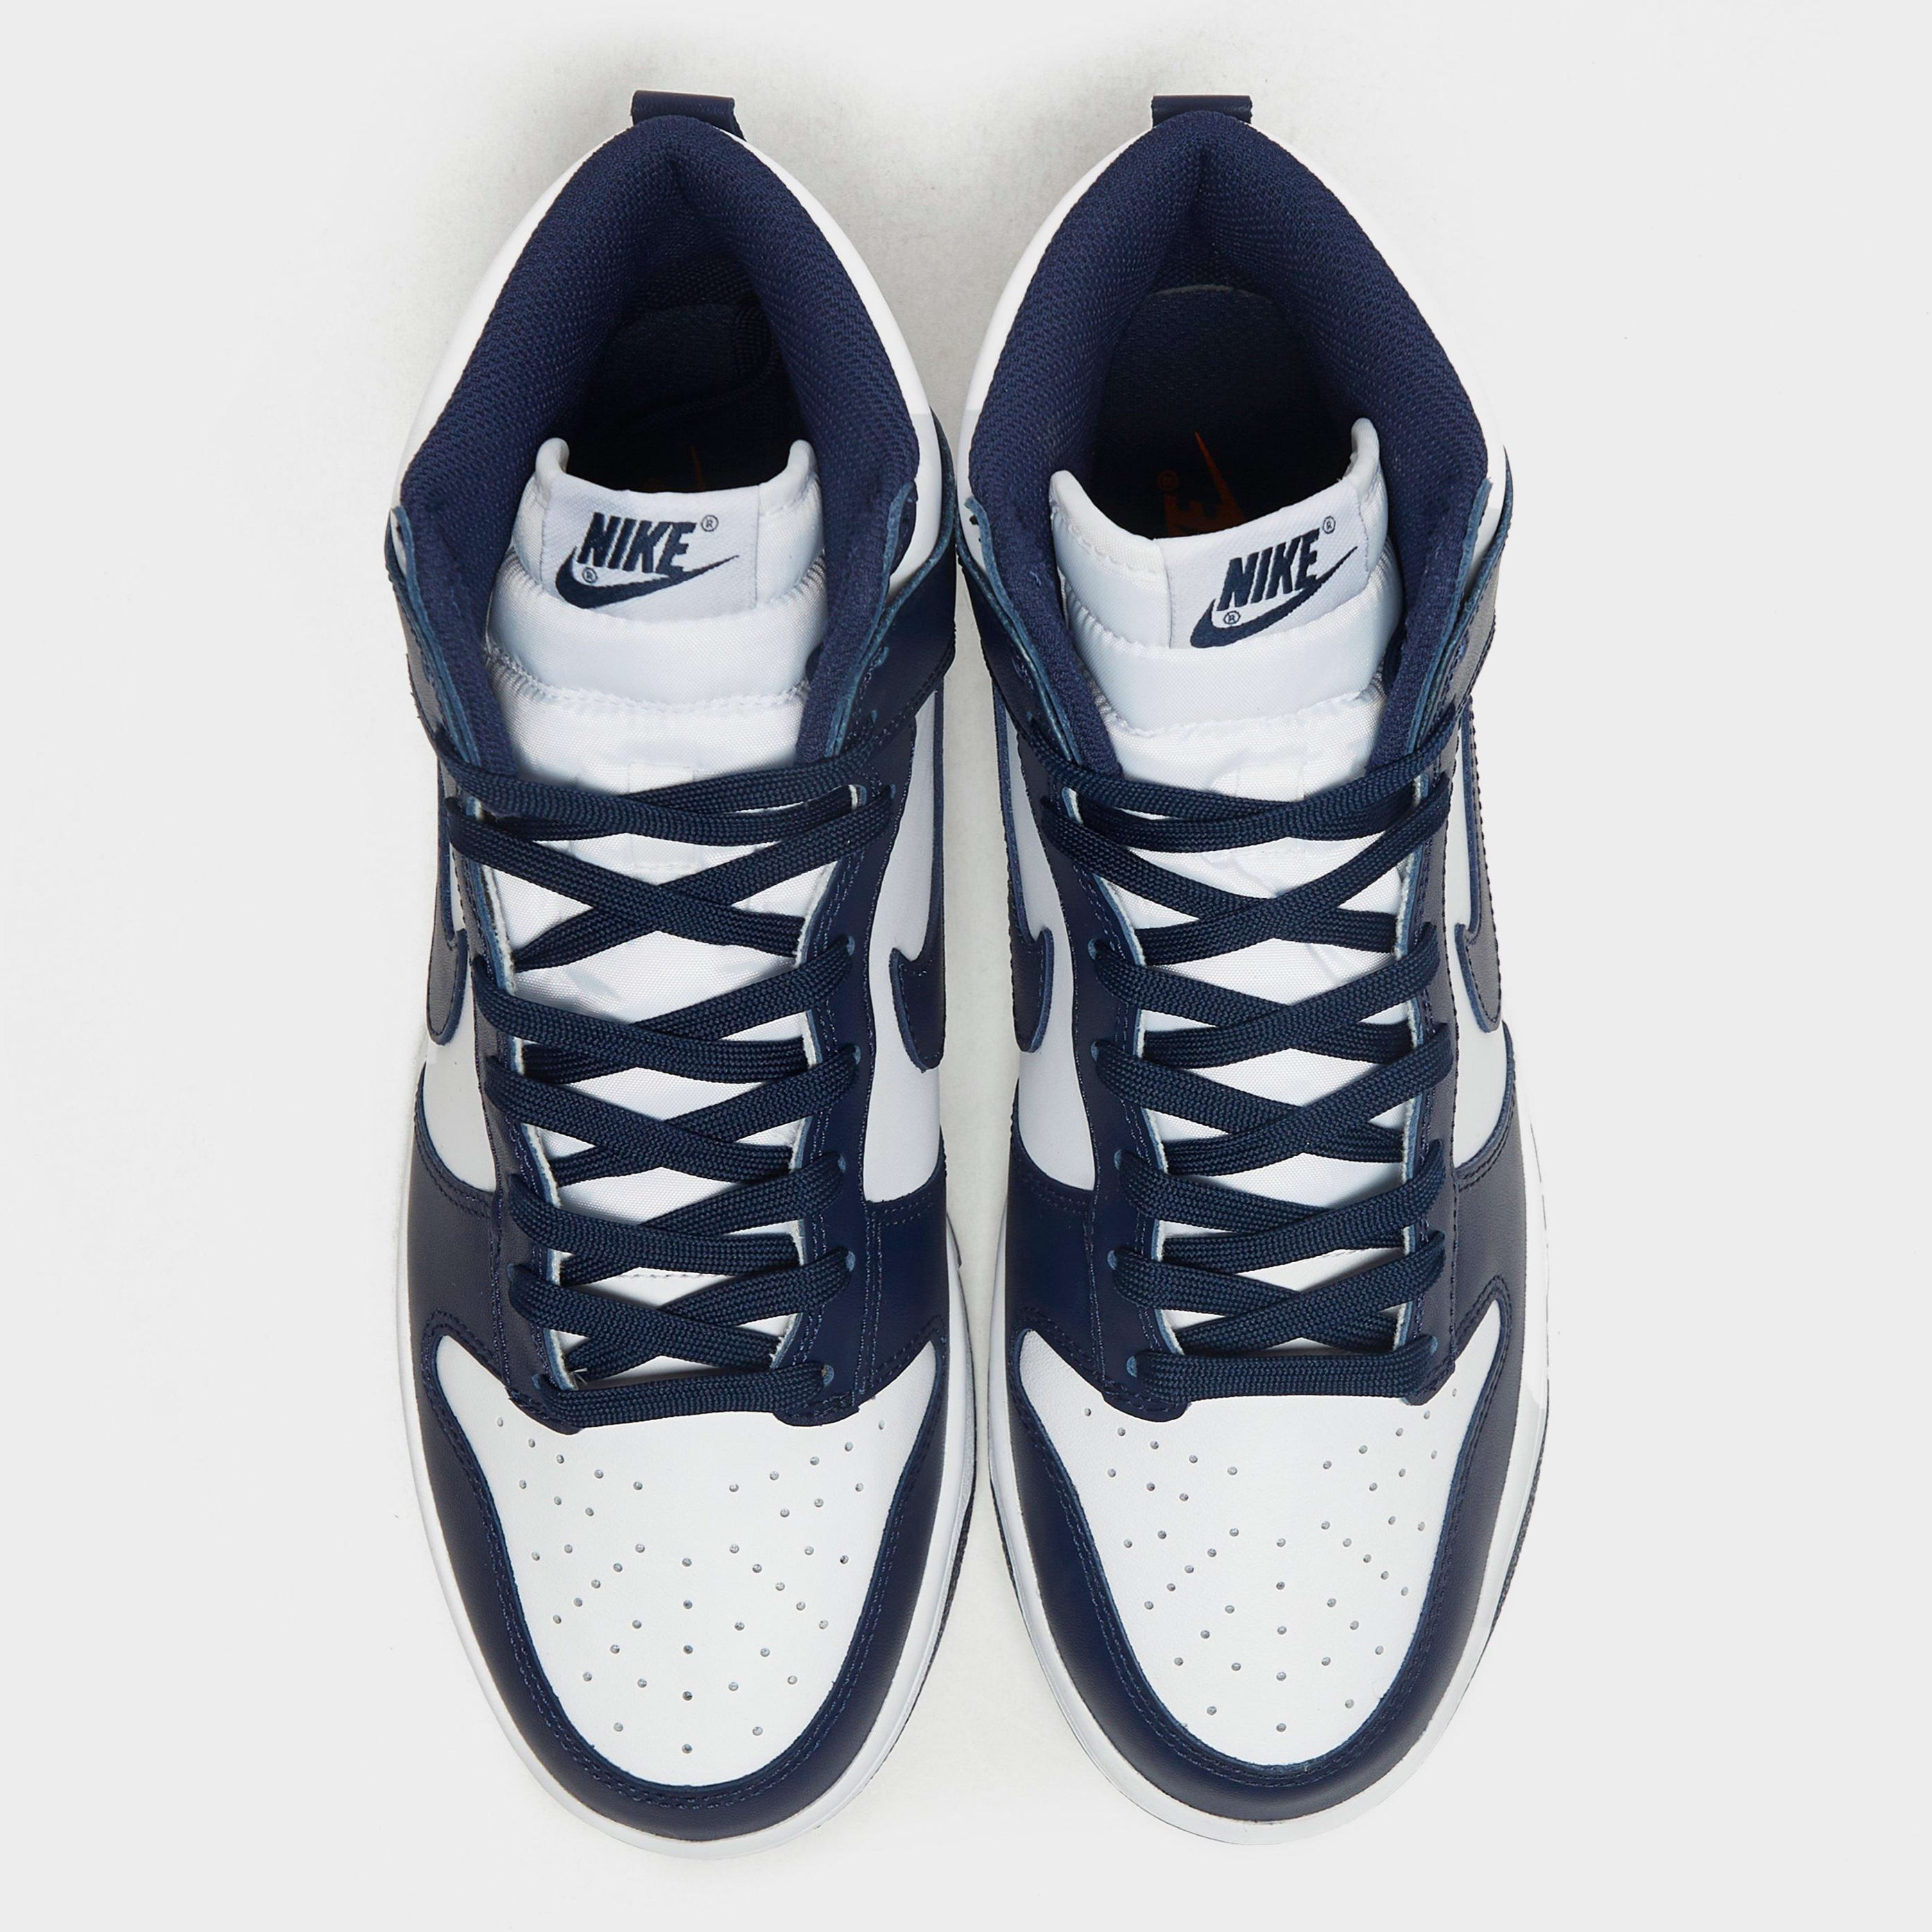 Nike Dunk High Midnight Navy 2021 Release Date Top